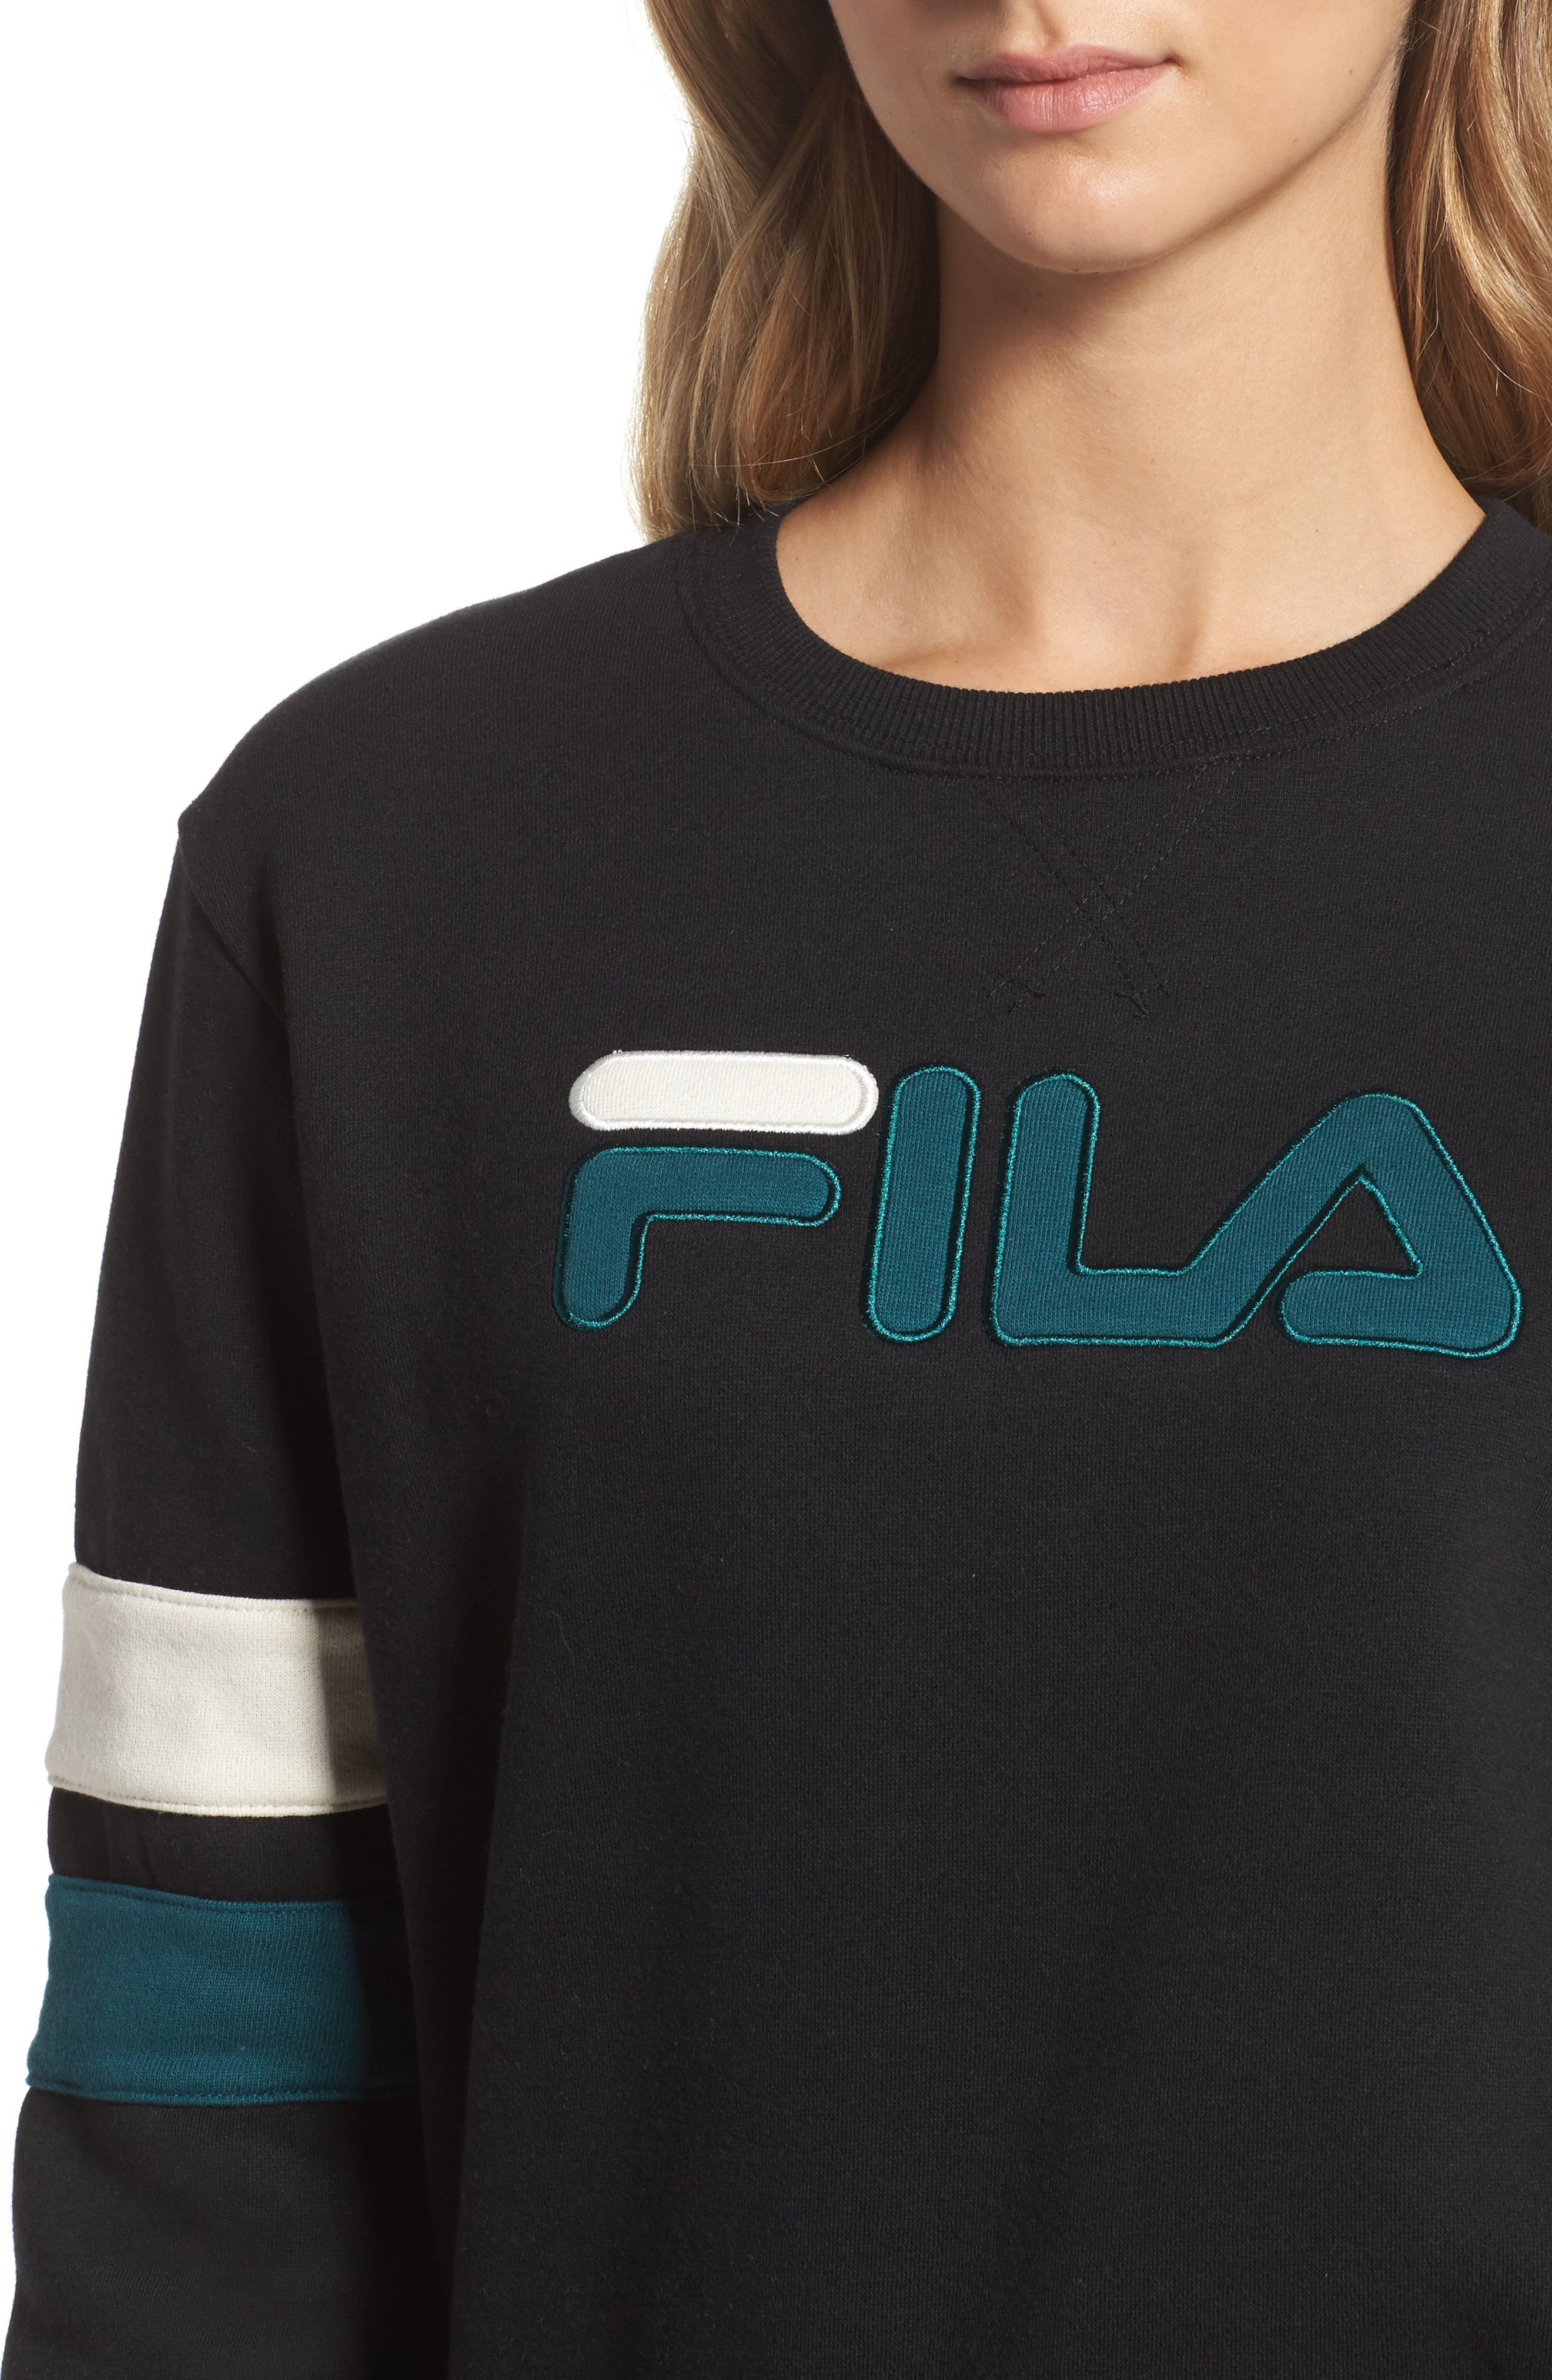 Newton Sweatshirt,                             Alternate thumbnail 4, color,                             Black/ Deep Teal/ Gardenia